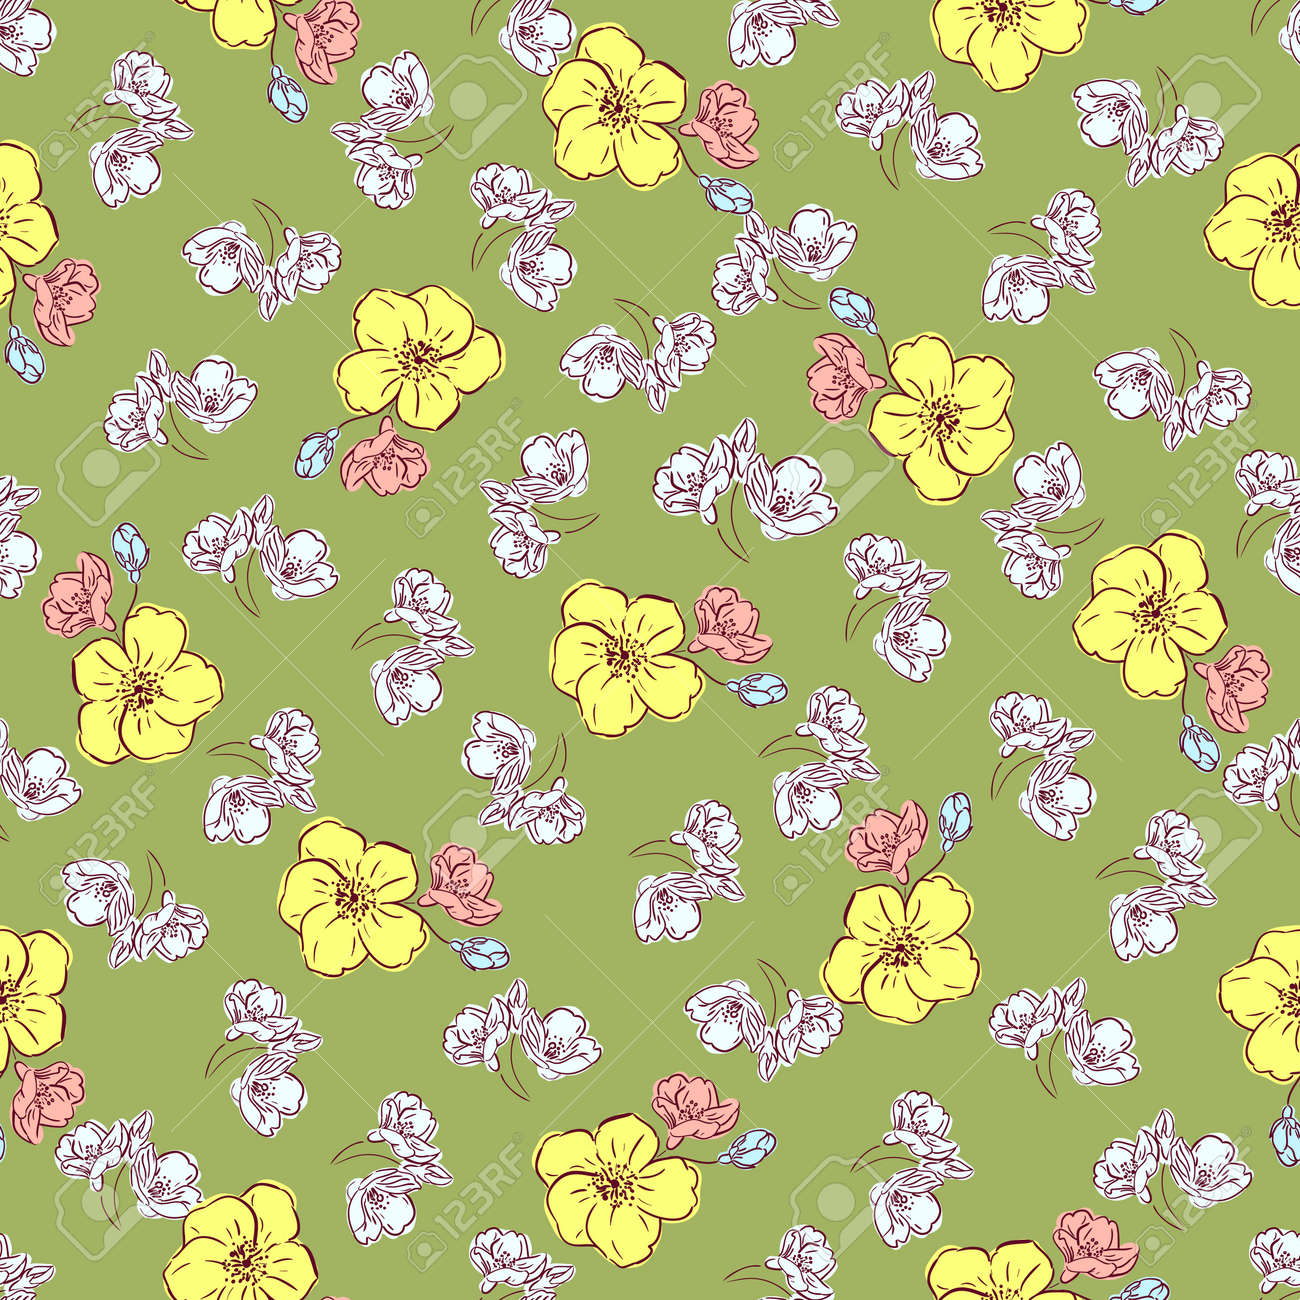 Floral spring seamless pattern, hand drawn yellow, pink and pale blue flowers, olive green background. Great for decorating fabrics, textiles, gift wrapping, printed matter, interiors, advertising. - 165787326